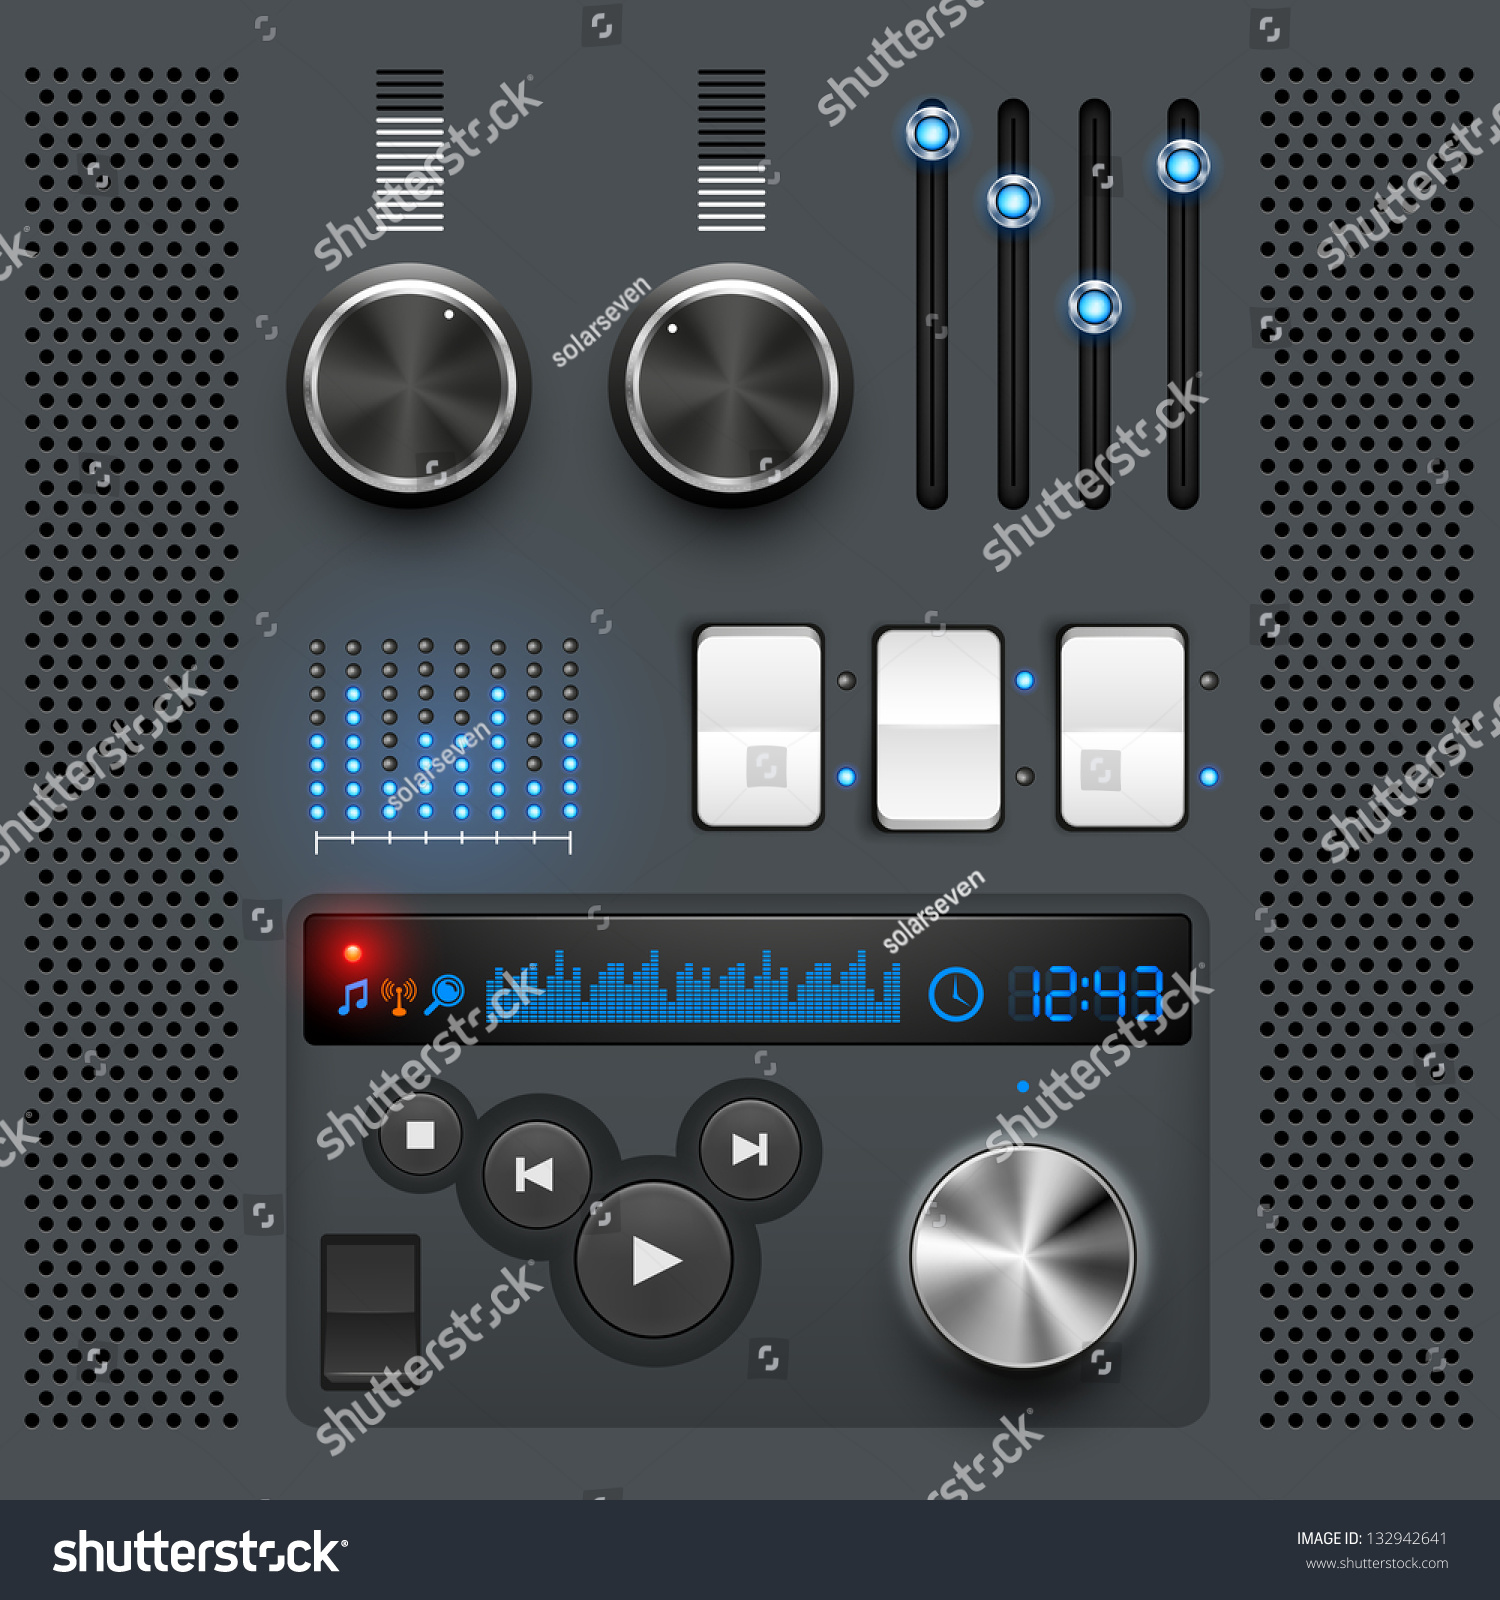 Gui. User Interface Graphic Design Elements. Stock Vector ...